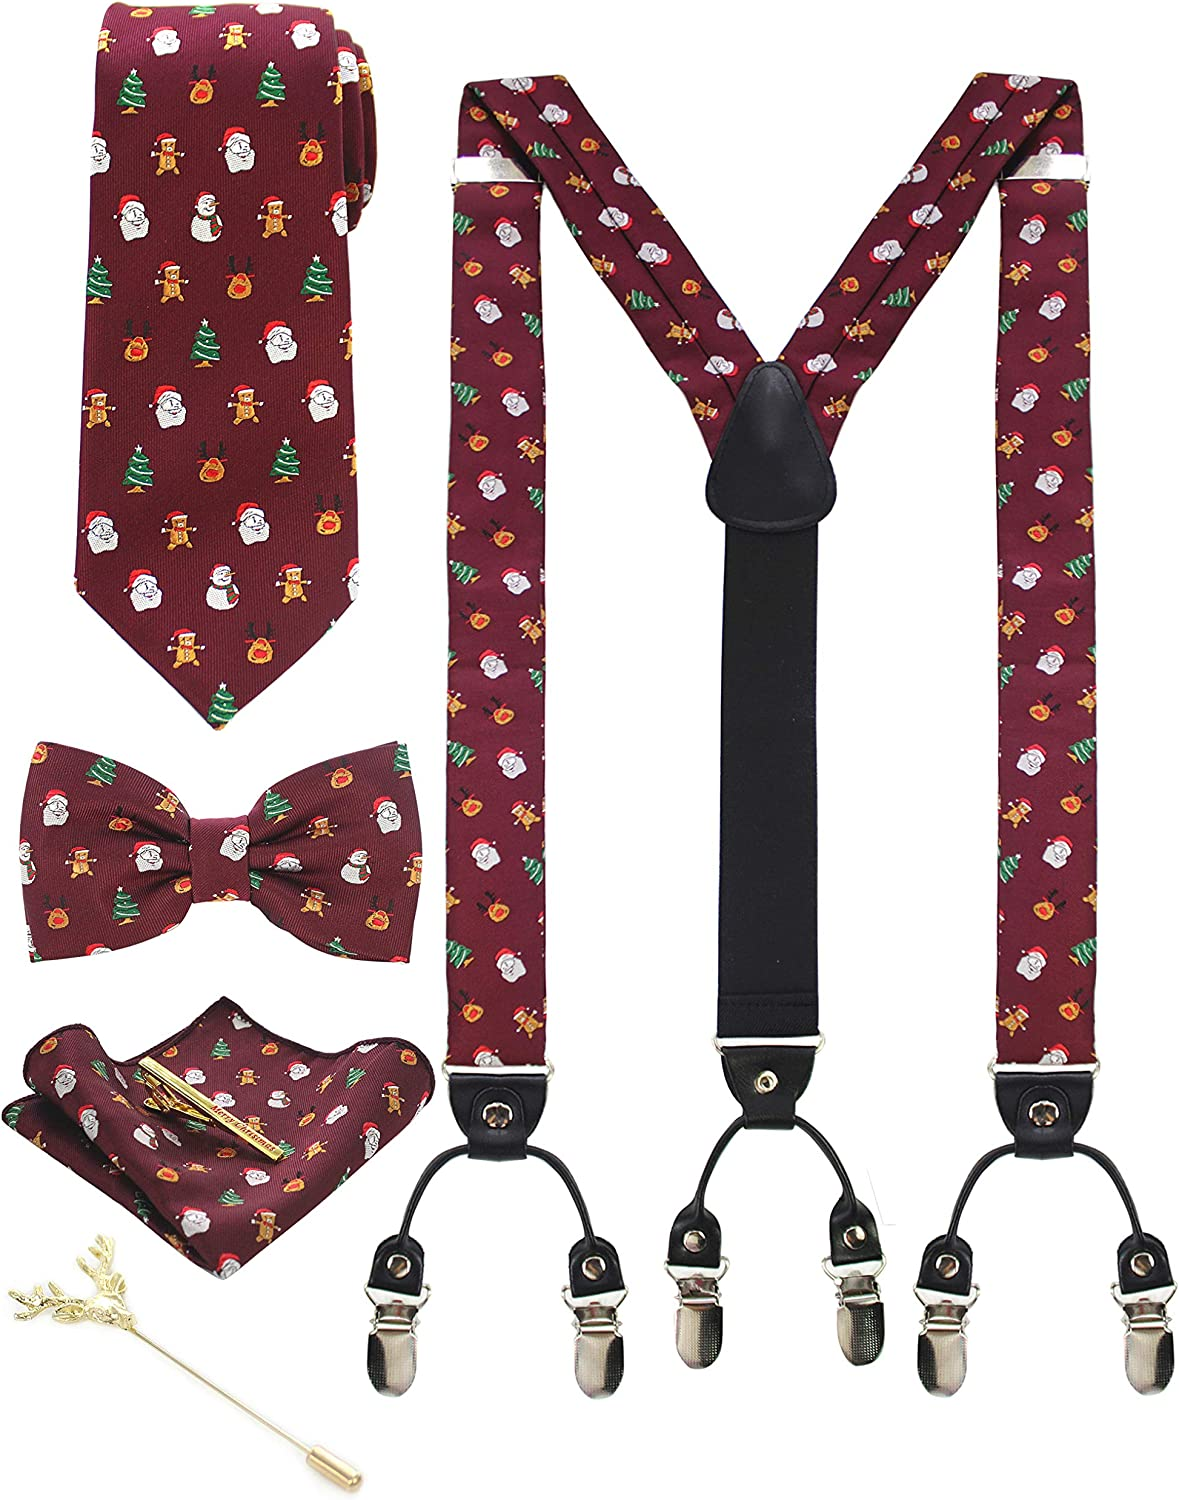 JEMYGINS Mens Festival Christmas Tie and Suspender Tie Clip with Bow Tie and Pocket Square Lapel Pin Sets